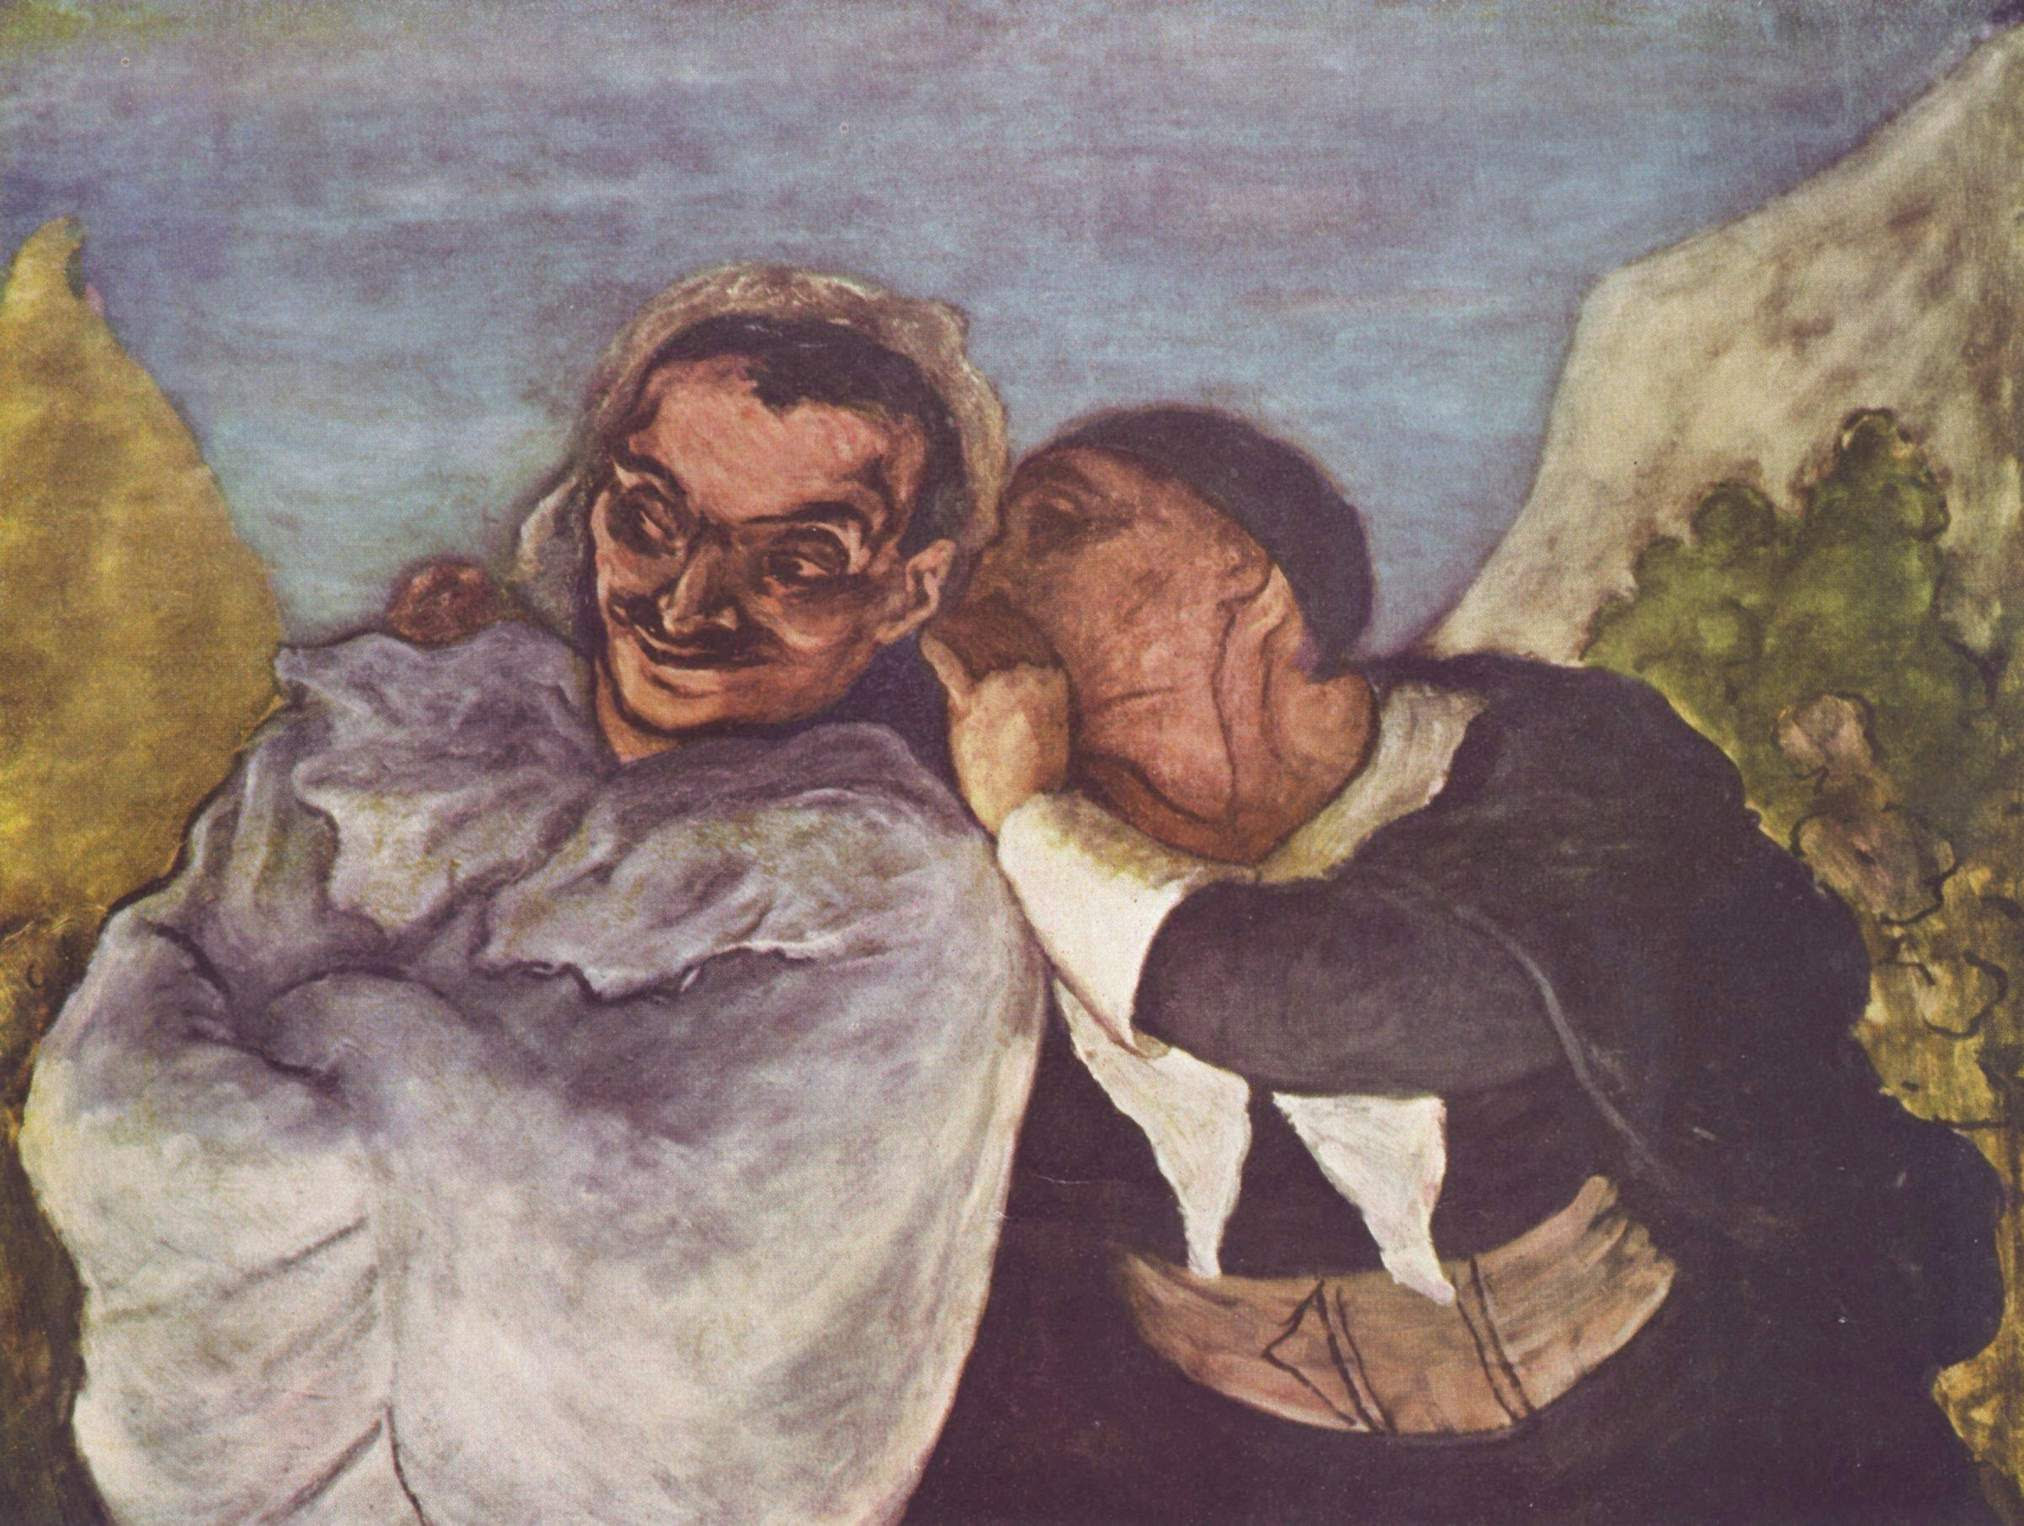 Crispin & Scapin By Honore Daumier